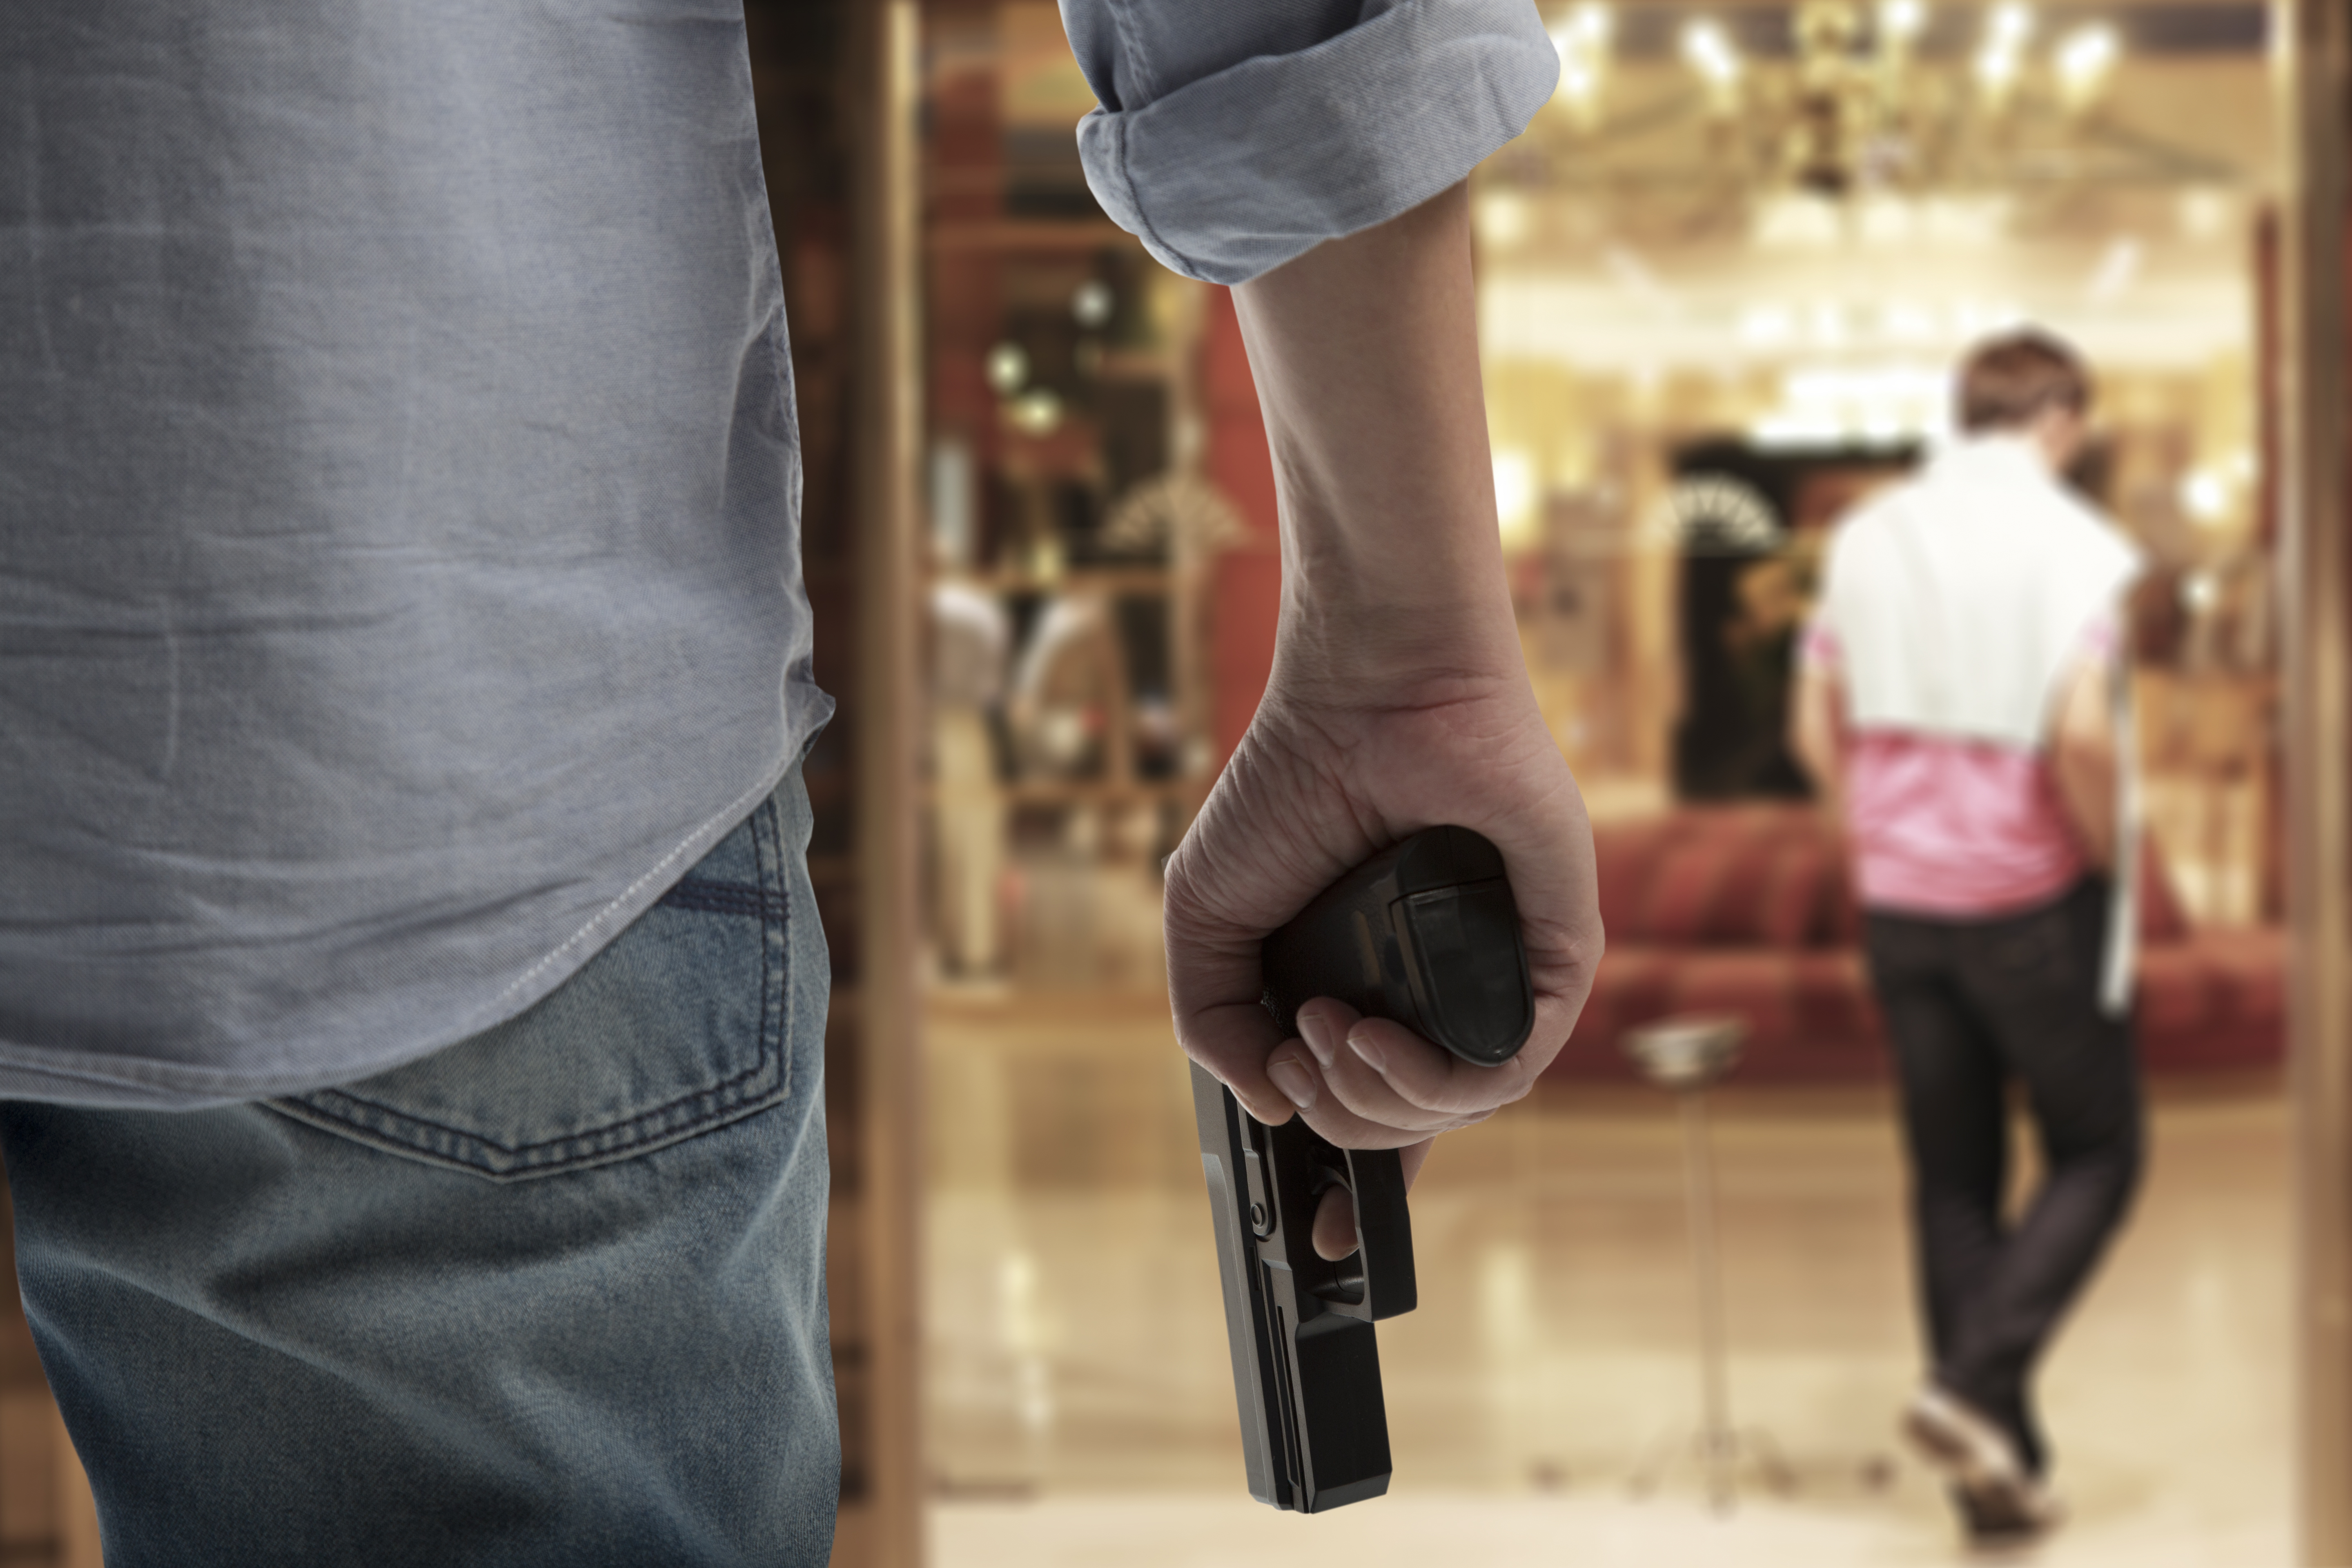 How to Prevent and Survive a Random Active Shooter Incident